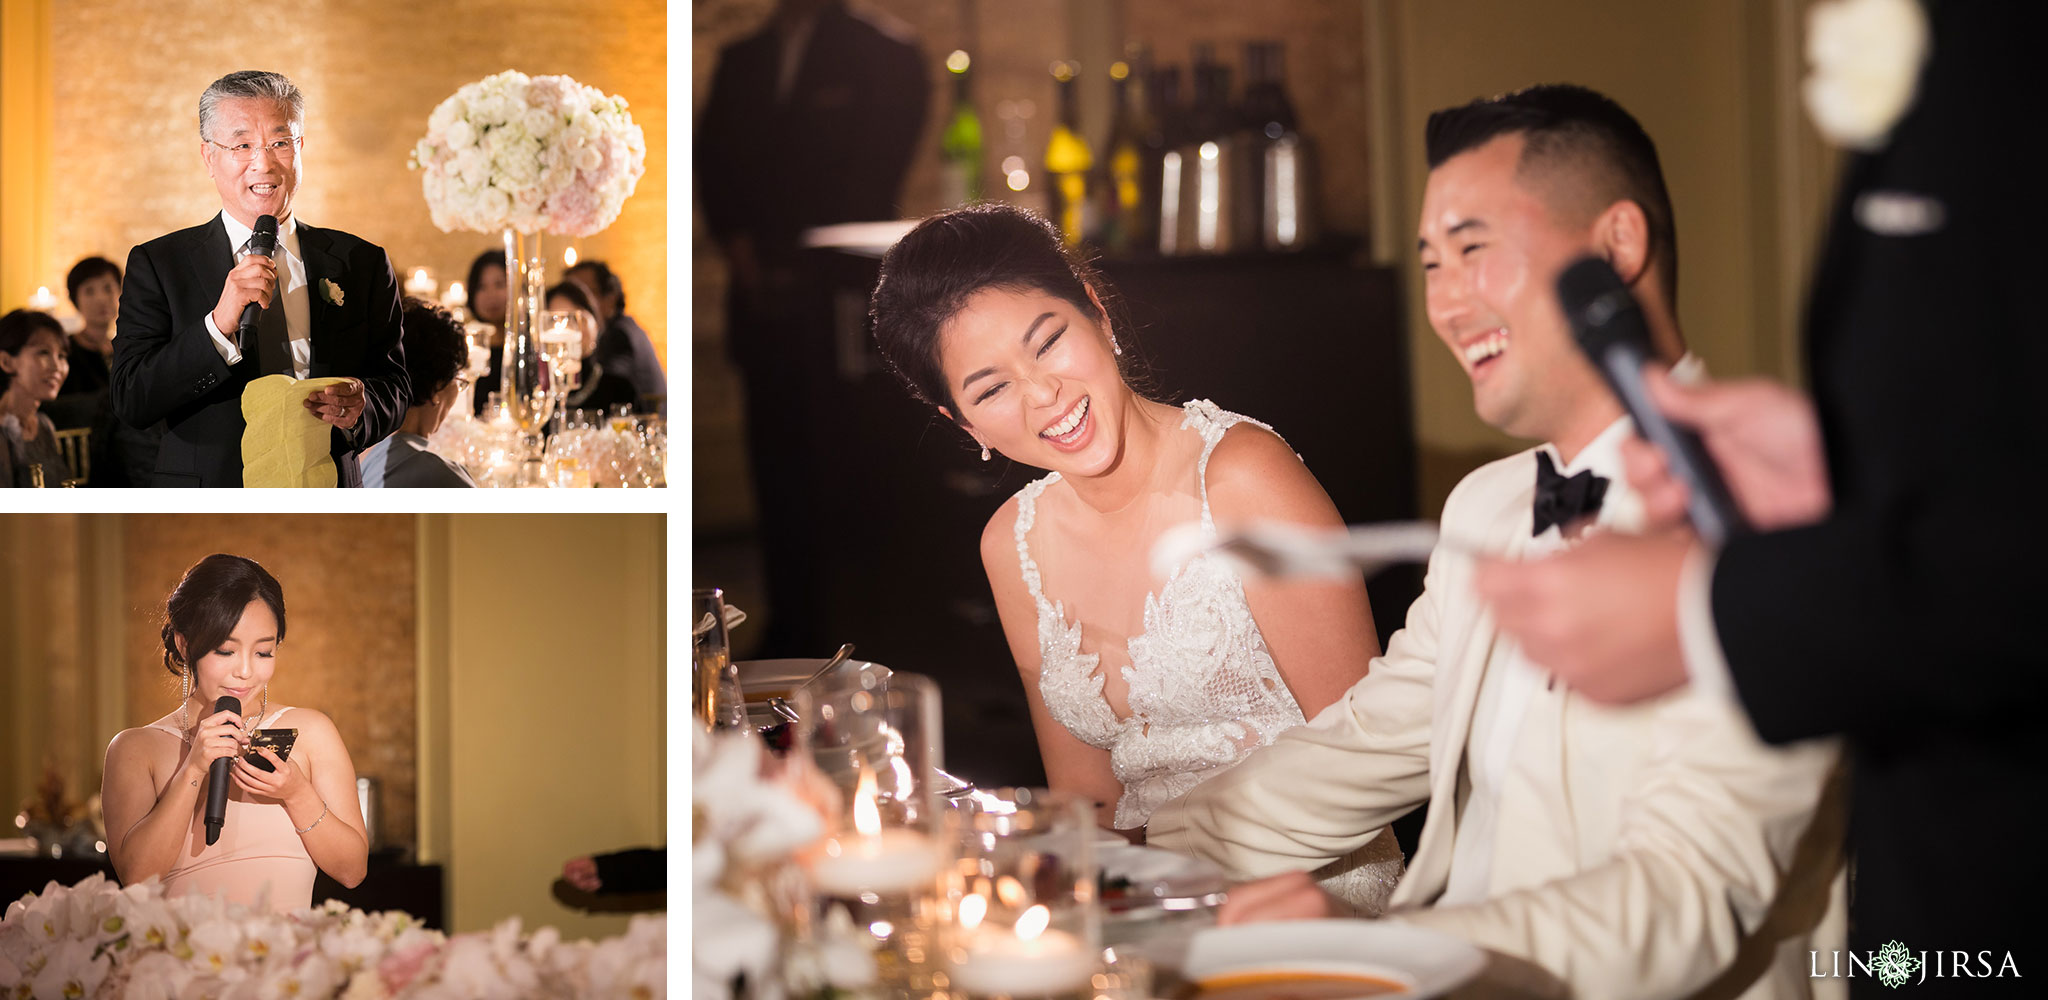 43 ritz carlton laguna niguel wedding reception speeches photography